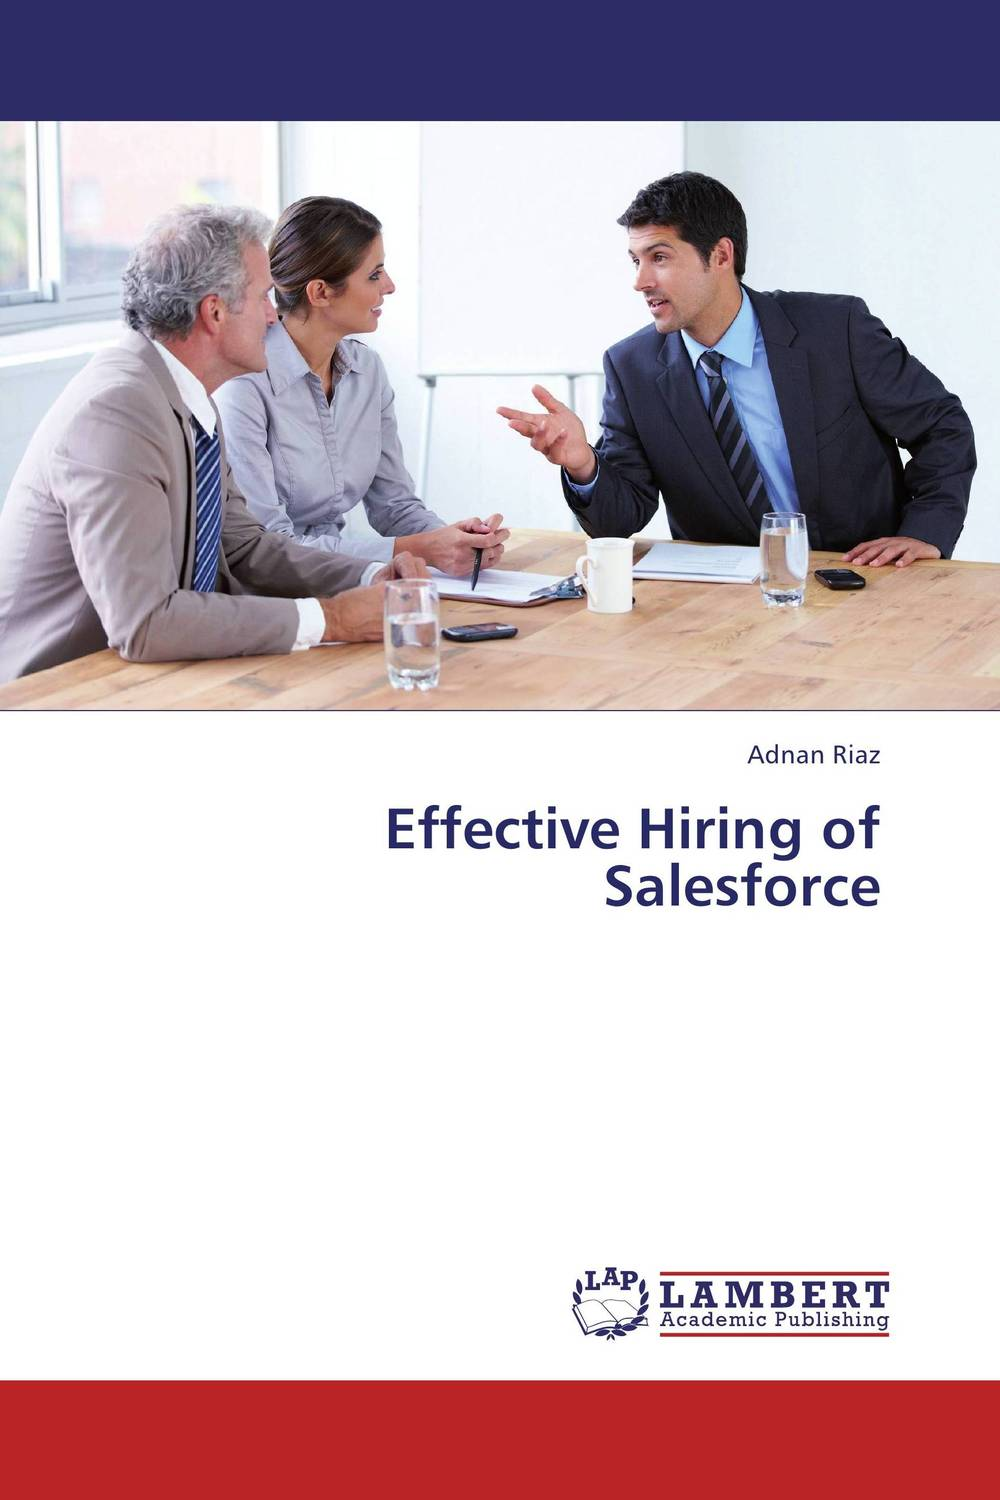 Effective Hiring of Salesforce jonathan whistman the sales boss the real secret to hiring training and managing a sales team